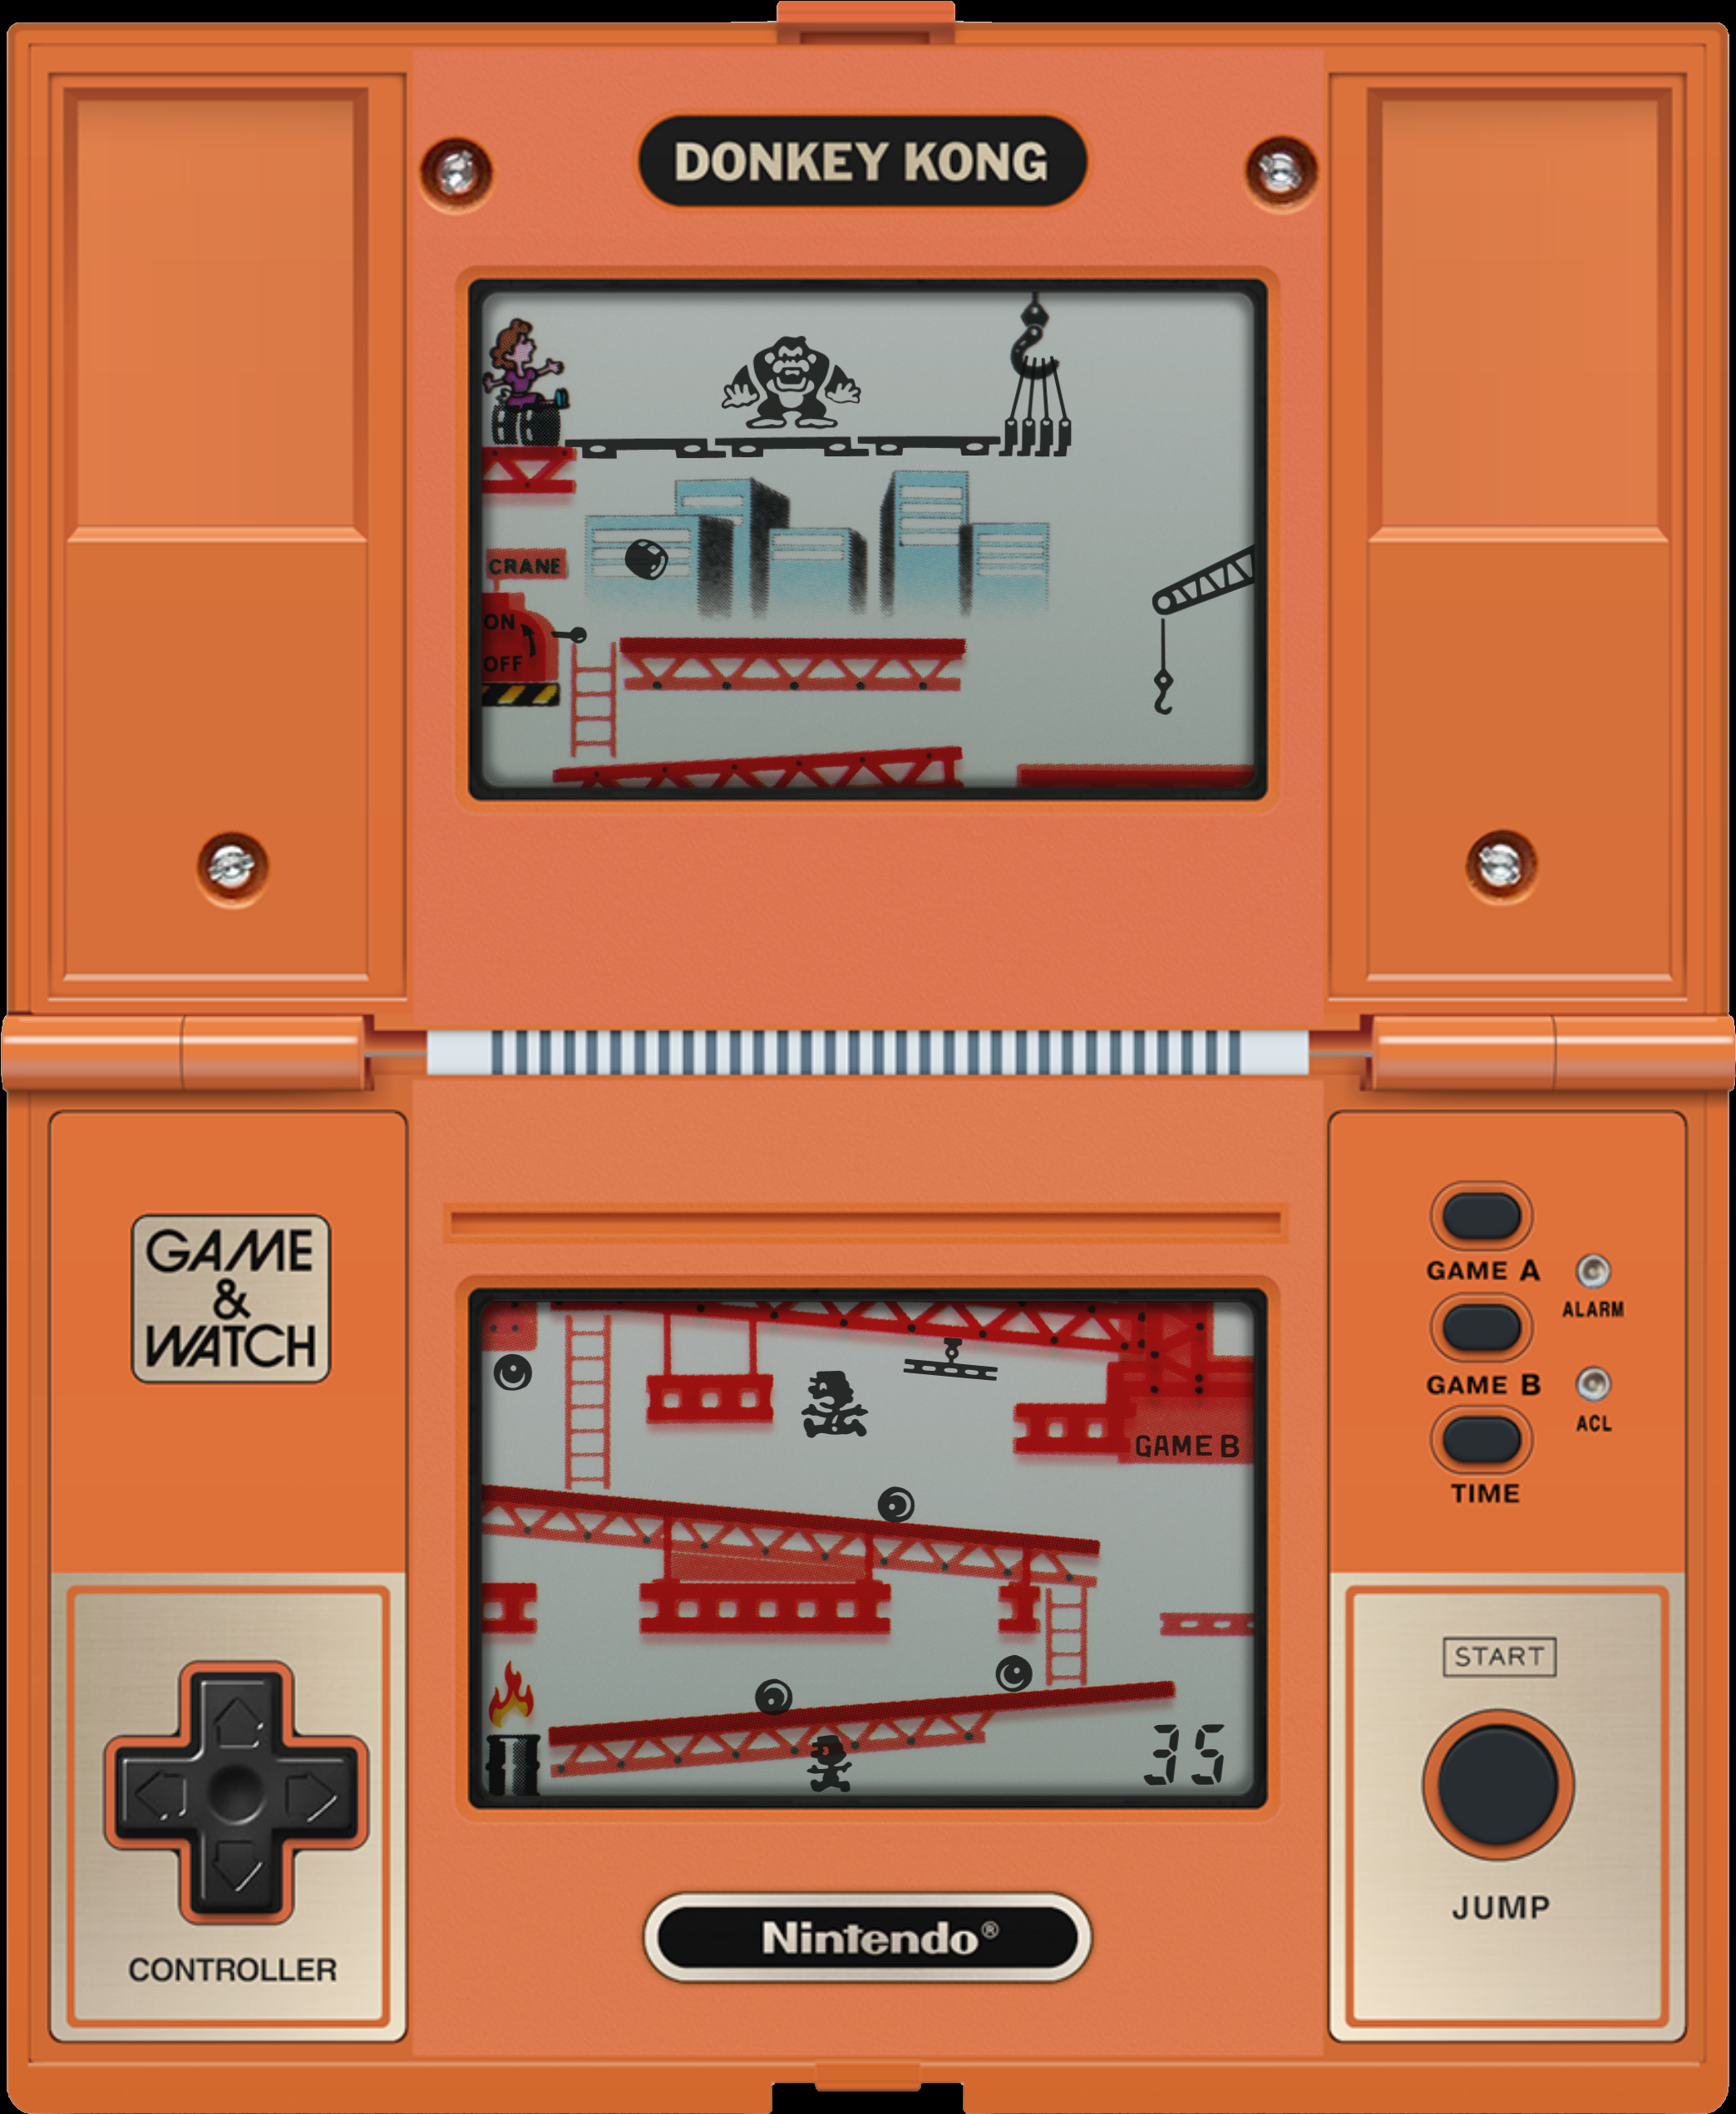 The Donkey Kong handheld Game & Watch unit had dual screens featuring Jumpman climbing girders to rescue Pauline.